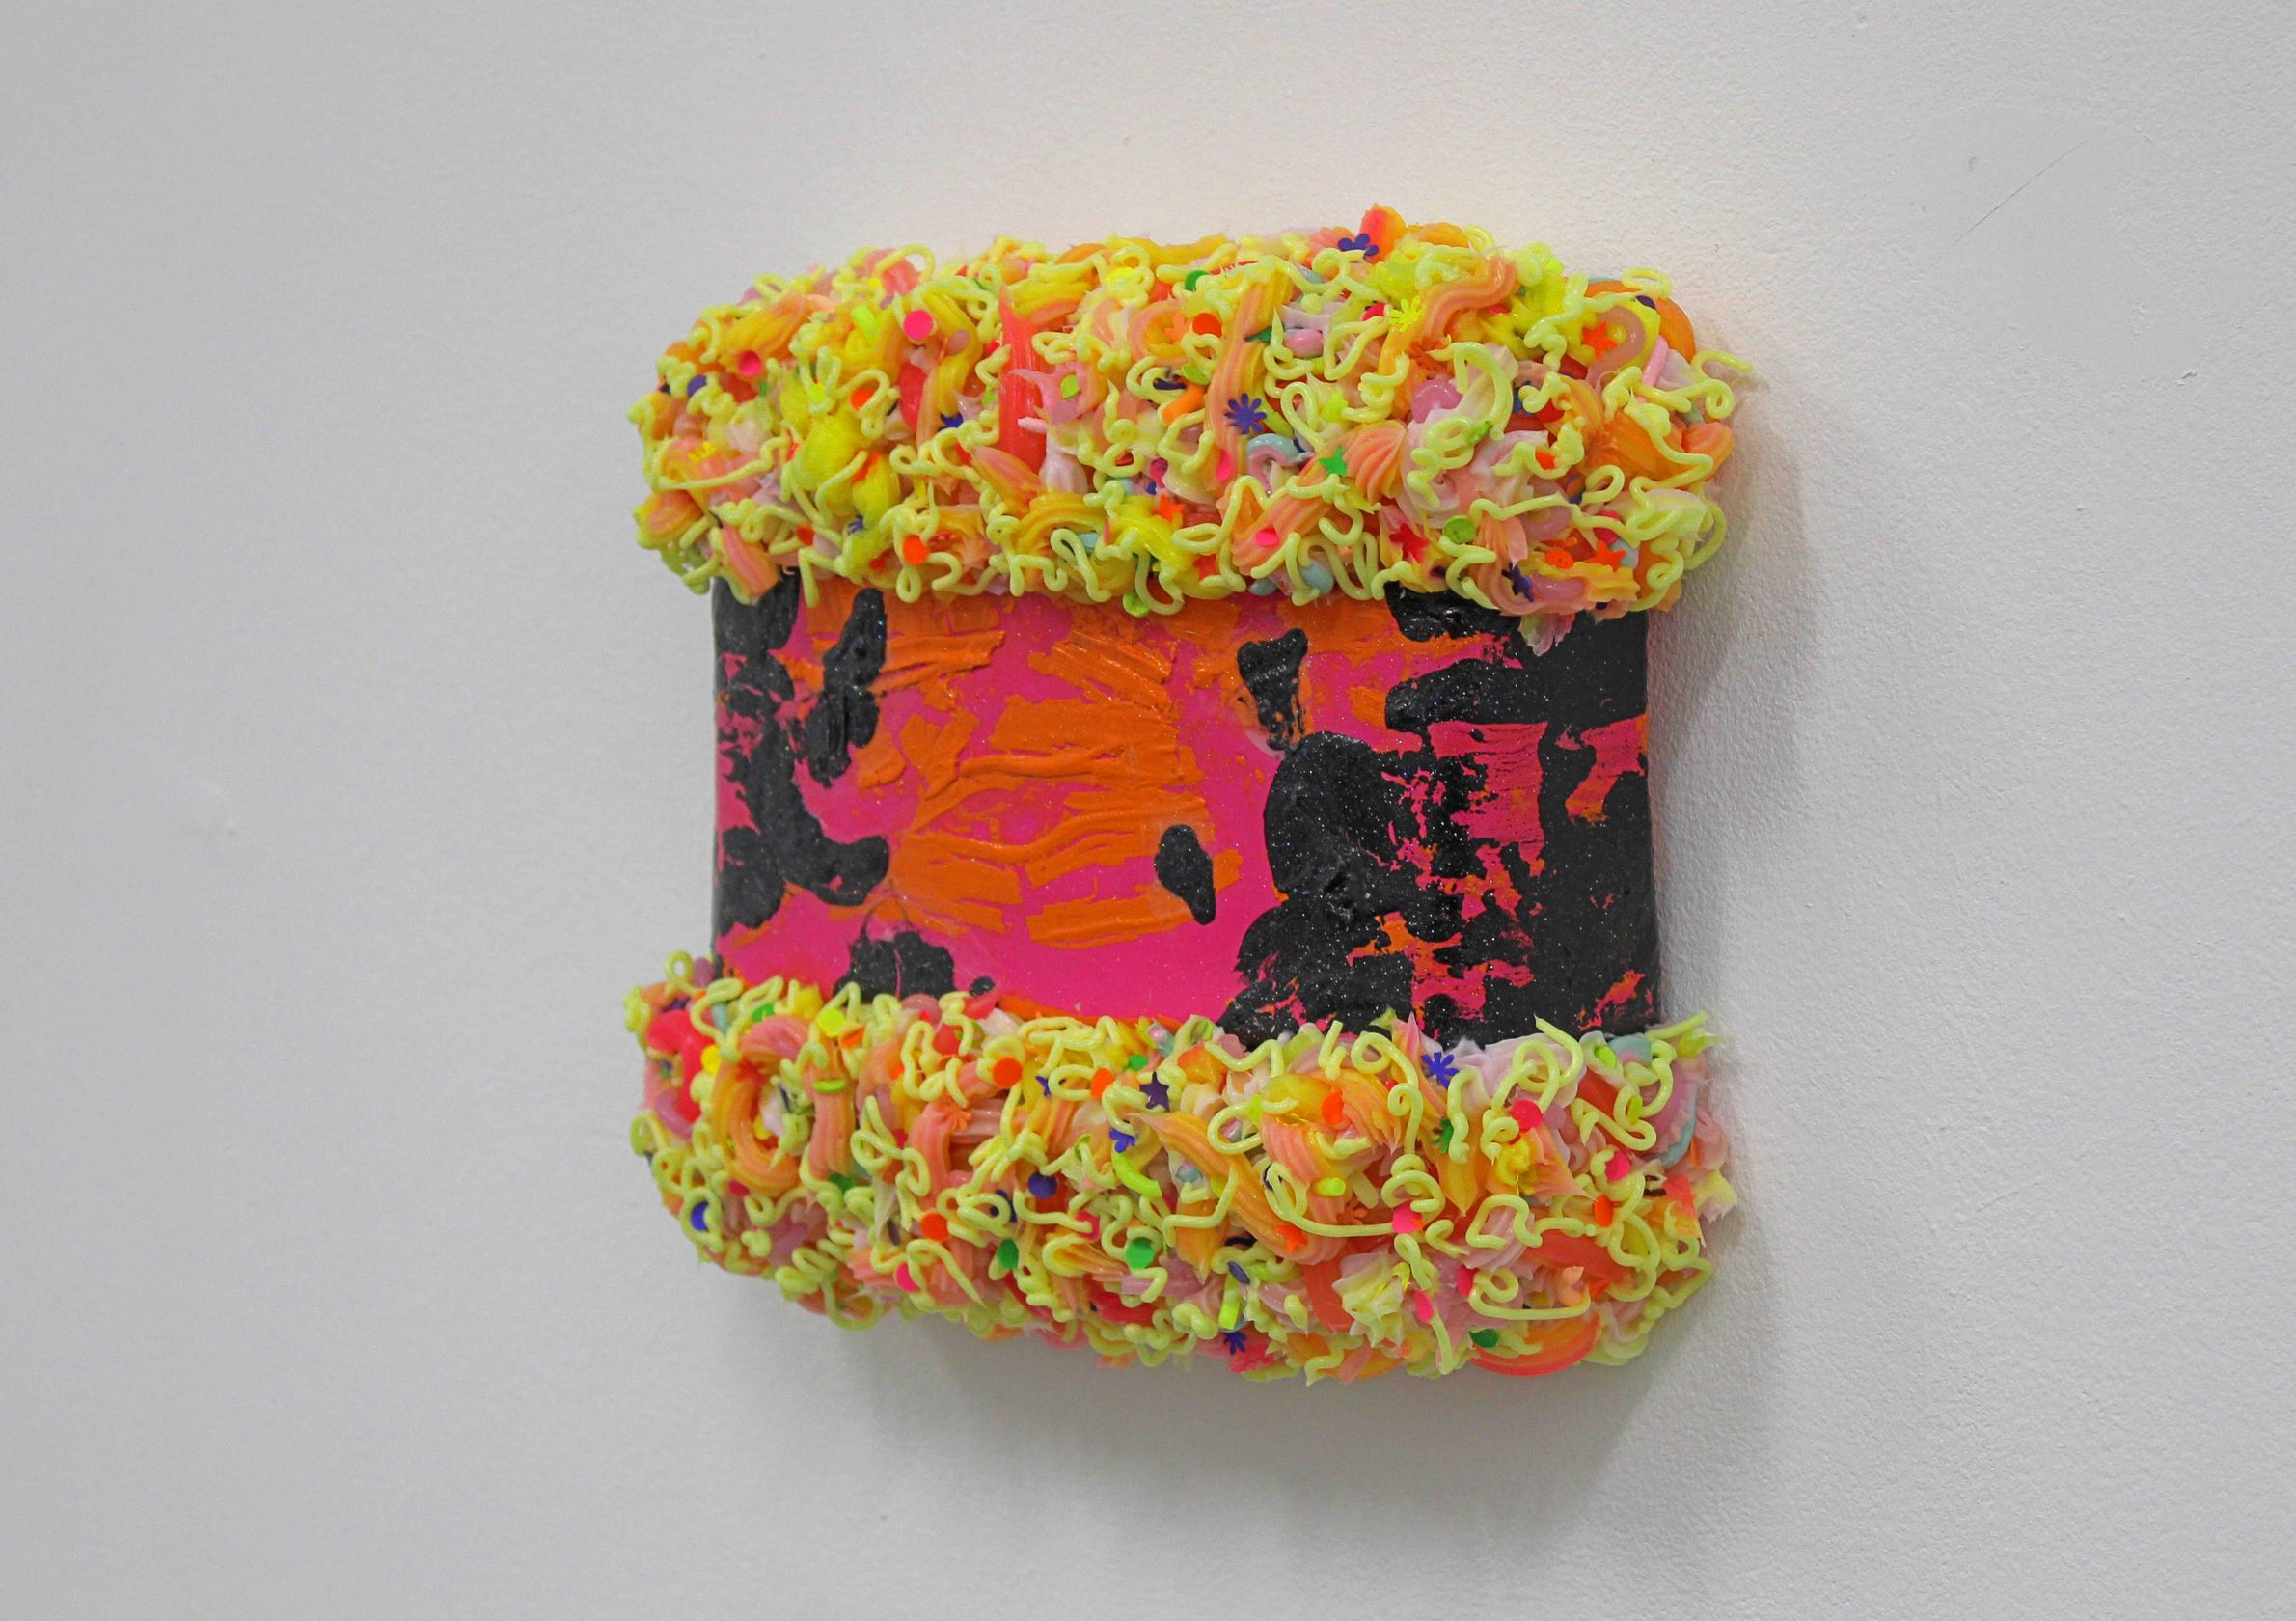 Ciaran Bowen, Sweet Sorrow, Oil, Silicone, Spray Paint, Paint Skins, Canvas on Expanding Foam, 2020-Nua-Collective